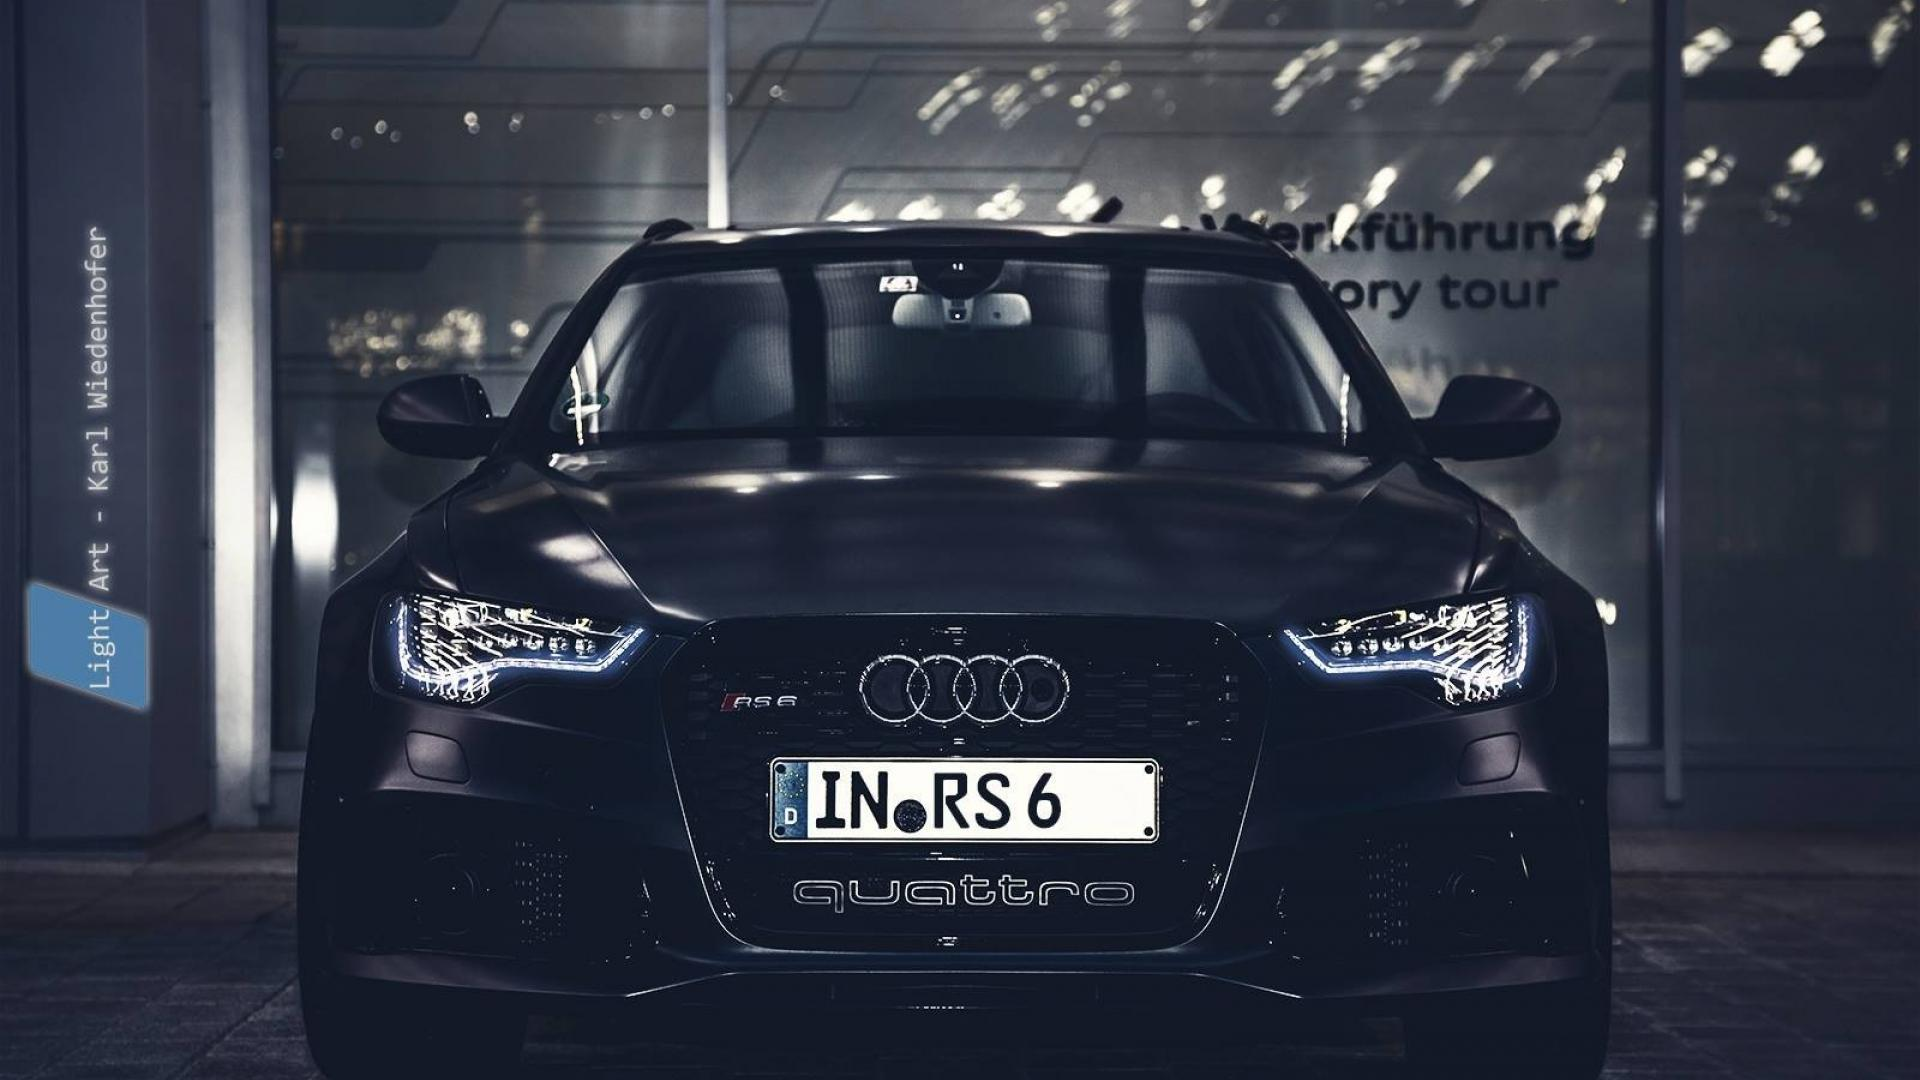 Audi RS 6 Wallpapers, 45 High Quality Audi RS 6 Wallpapers | Full ...